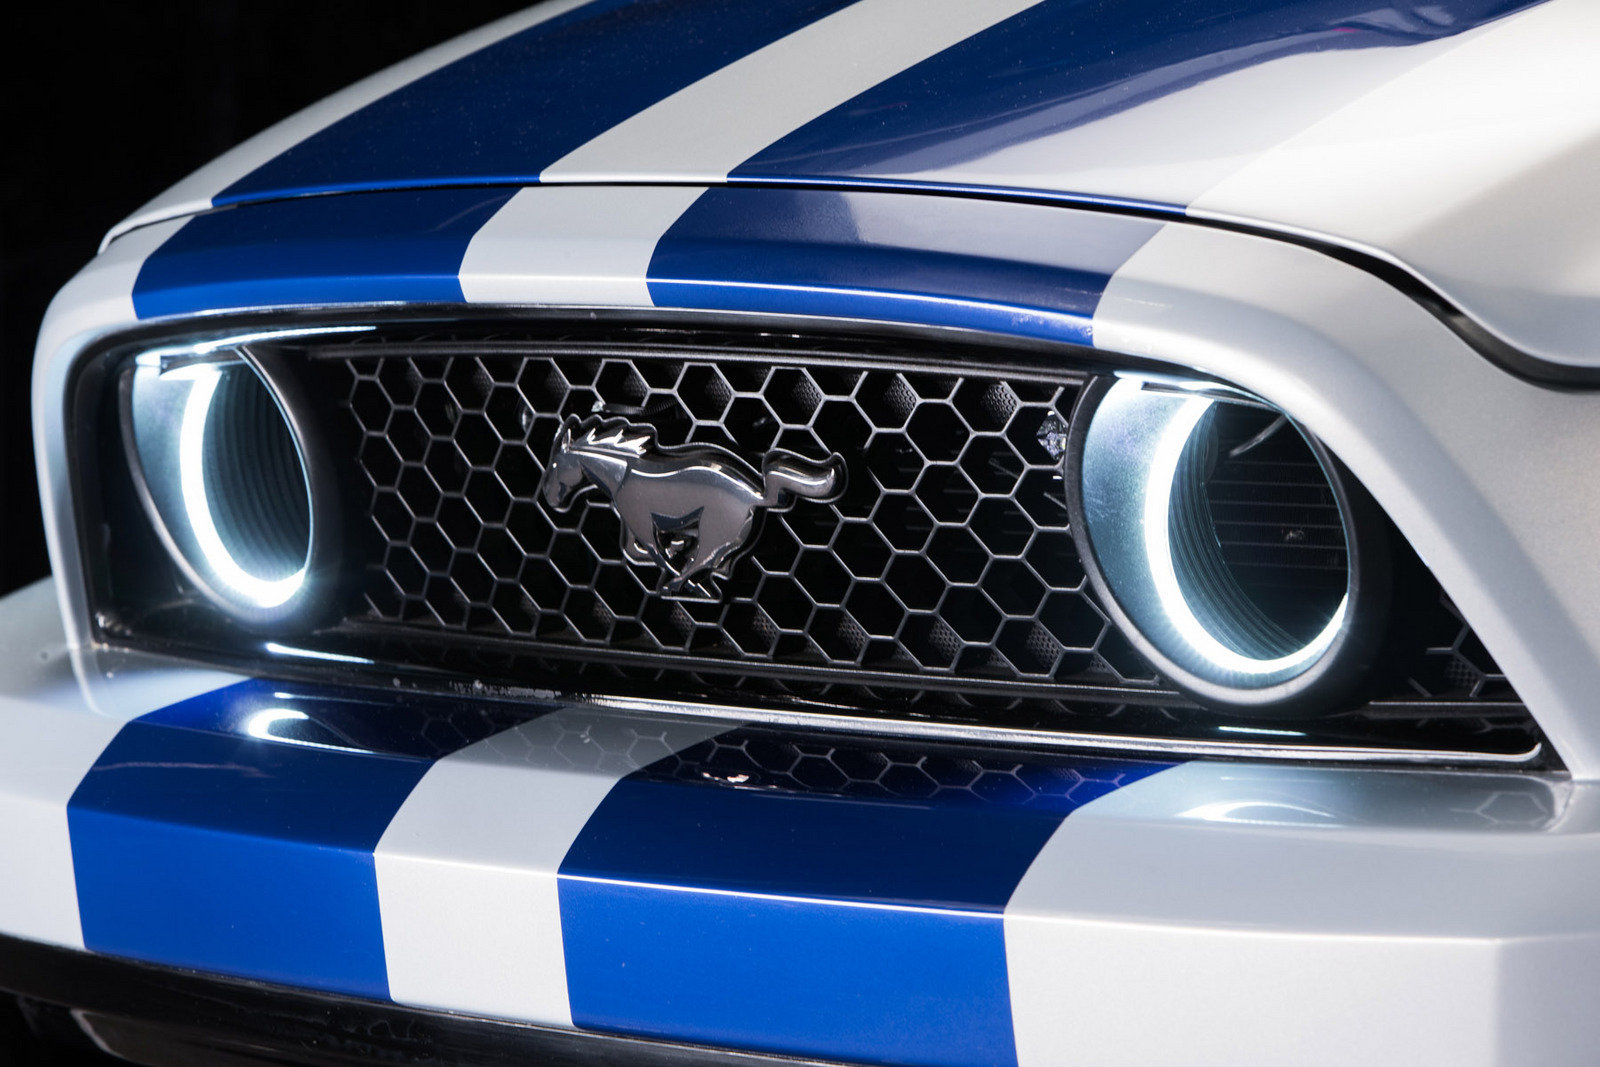 Nfs Movie Cars Wallpaper 2013 Ford Mustang Shelby Gt500 Need For Speed Edition